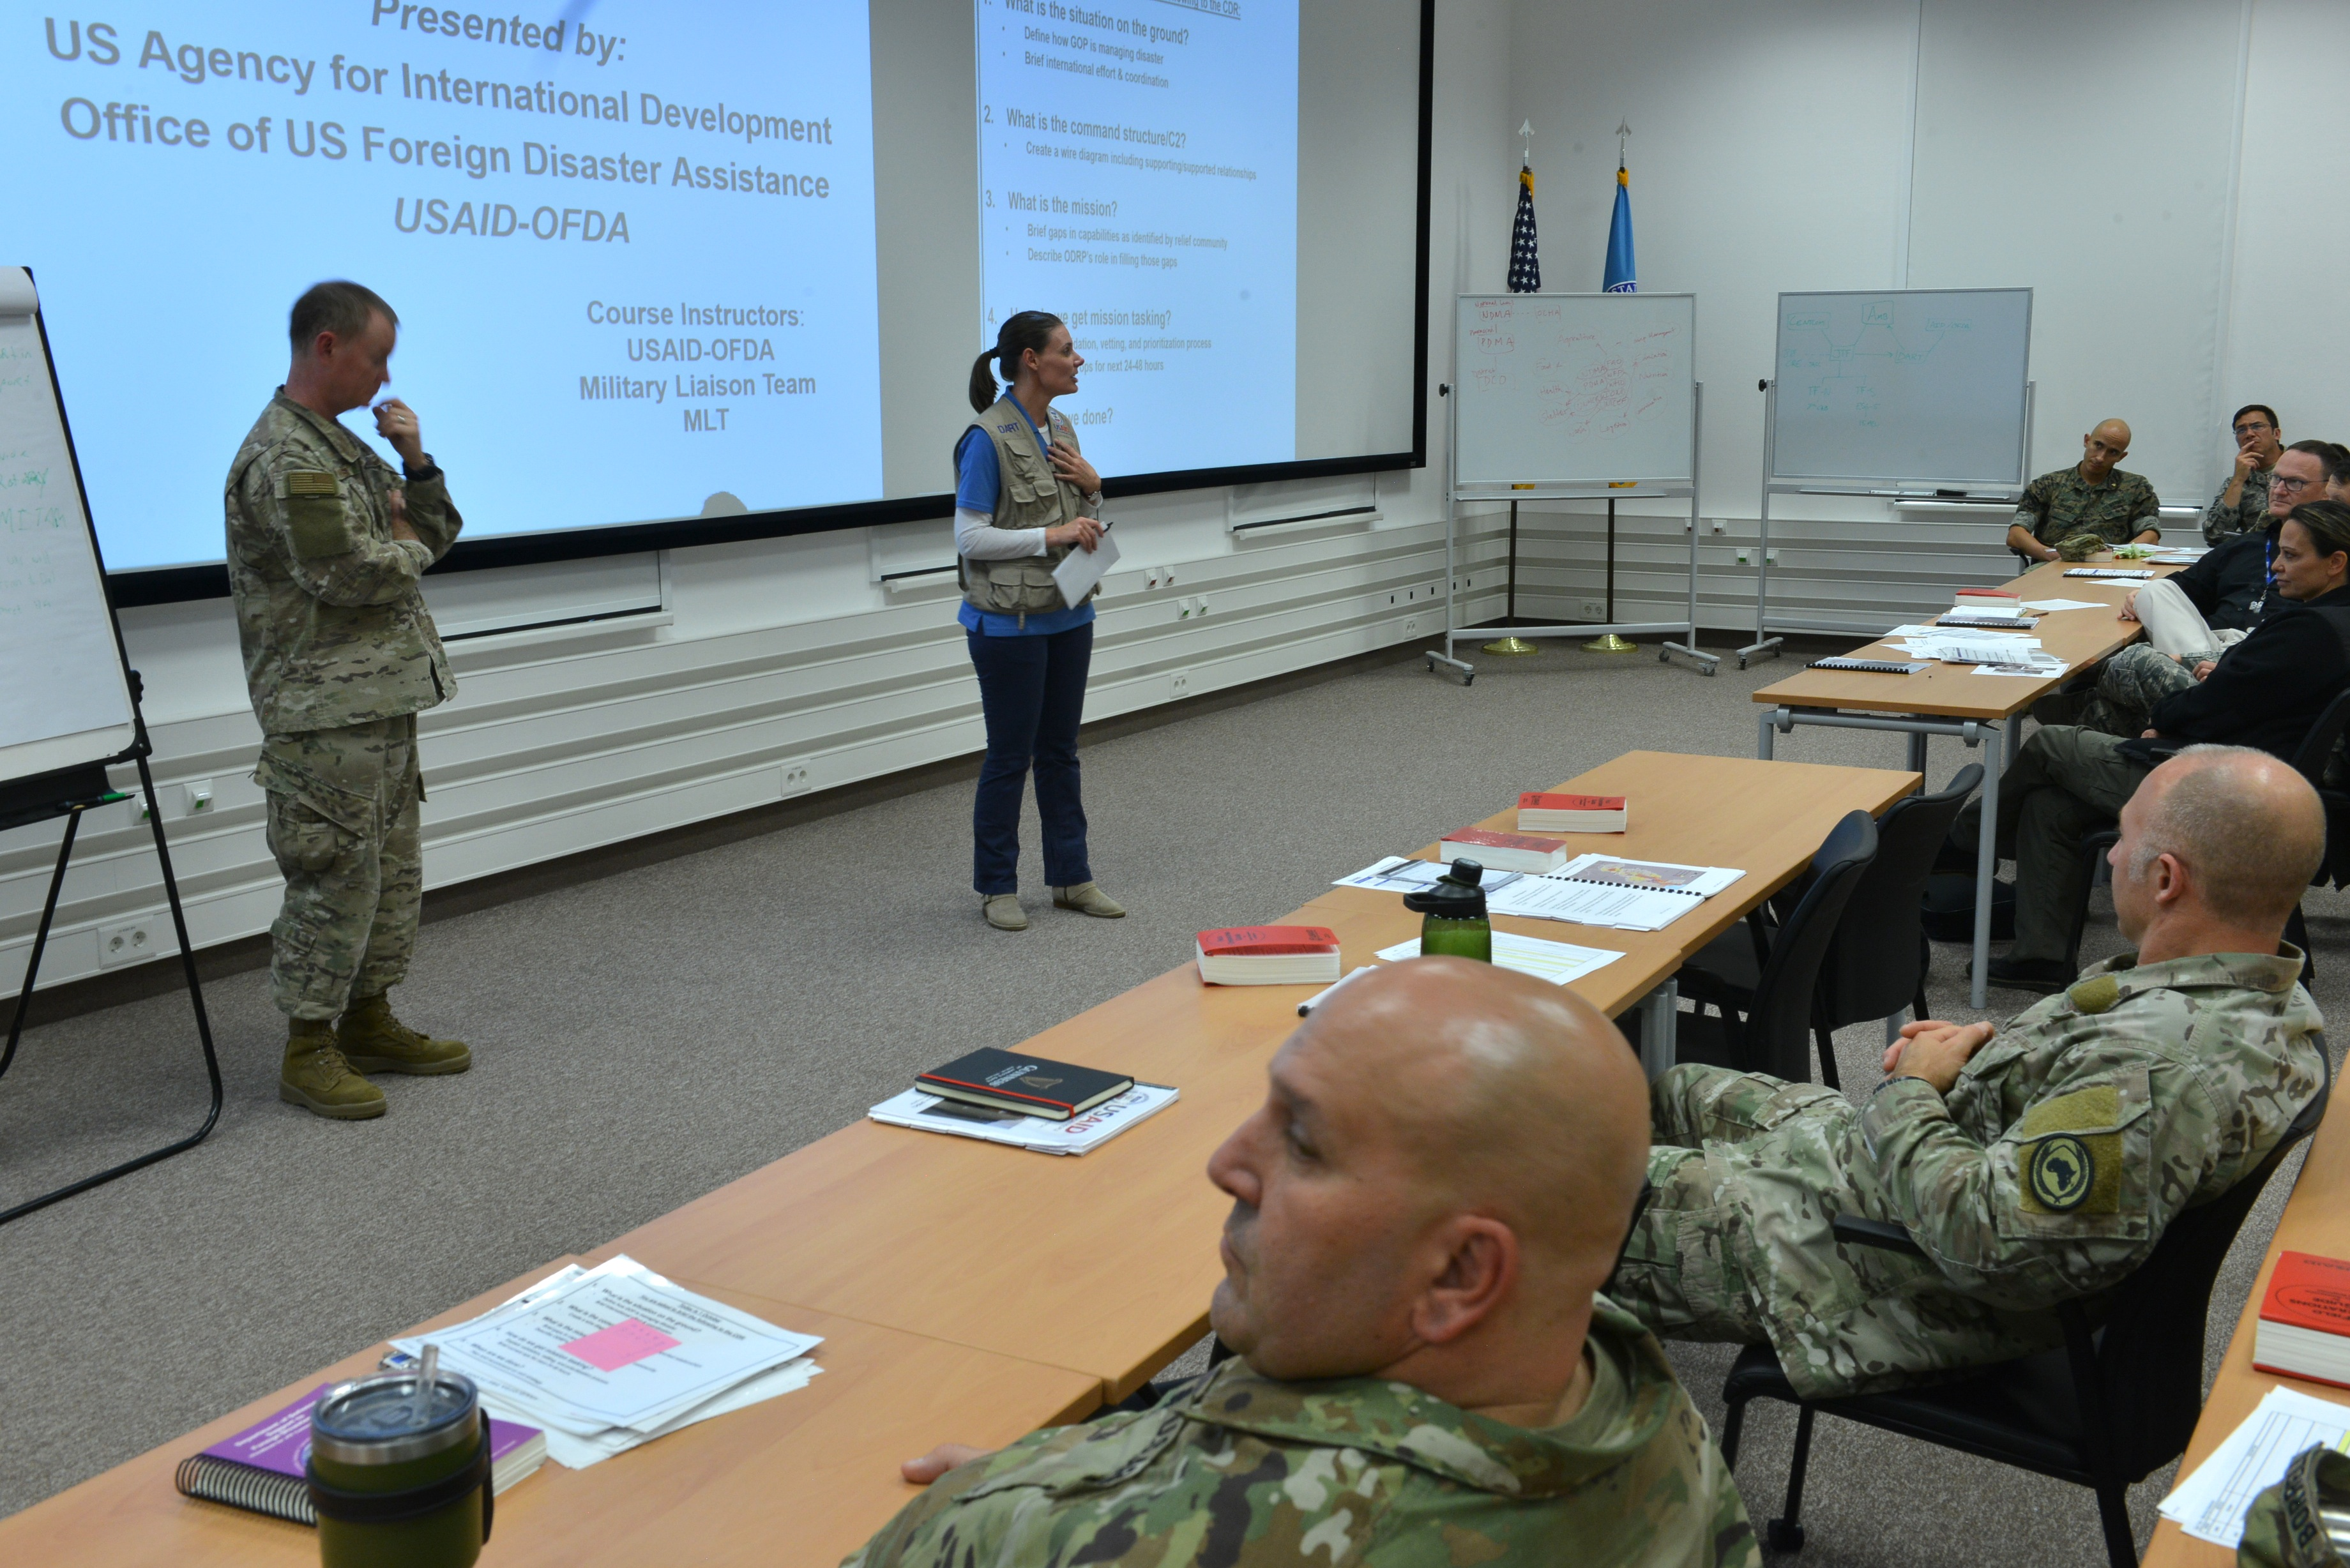 Air Force Brig. Gen. William West, Deputy Director of Operations, U.S. Africa Command, and Leigh Caraher, Lead Humanitarian Assistance Advisor to AFRICOM, address attendees of the Joint Humanitarian Operations Course, Oct. 4, 2018, at the AFRICOM Special Events Center.